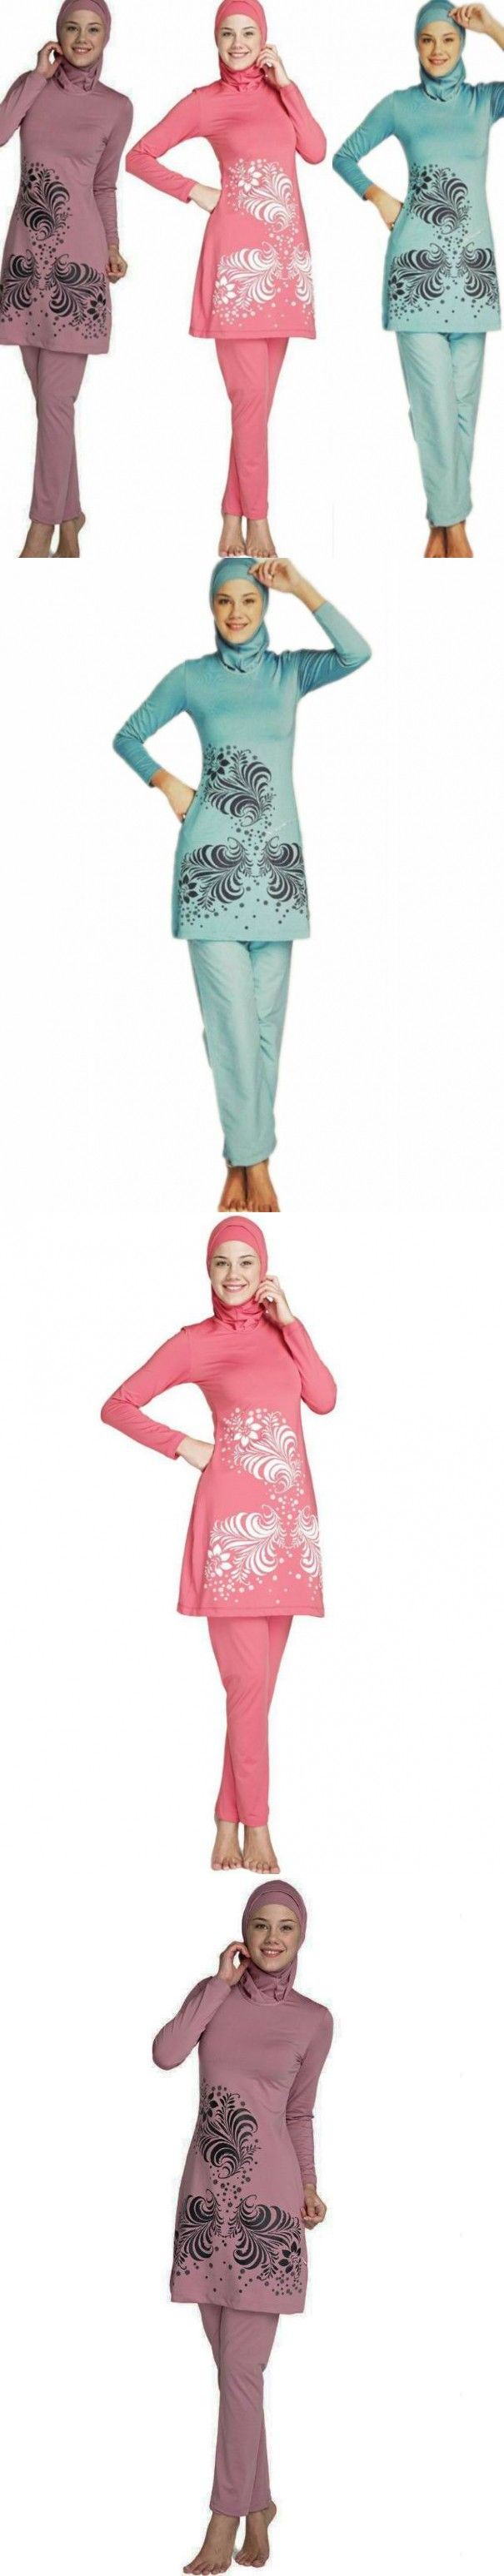 S-4XL Full Cover Up Modest Girls Muslim Swimwear Islamic Swimsuit Conservative Long Sleeve Bathing Suit For Women Beachwear $42.6